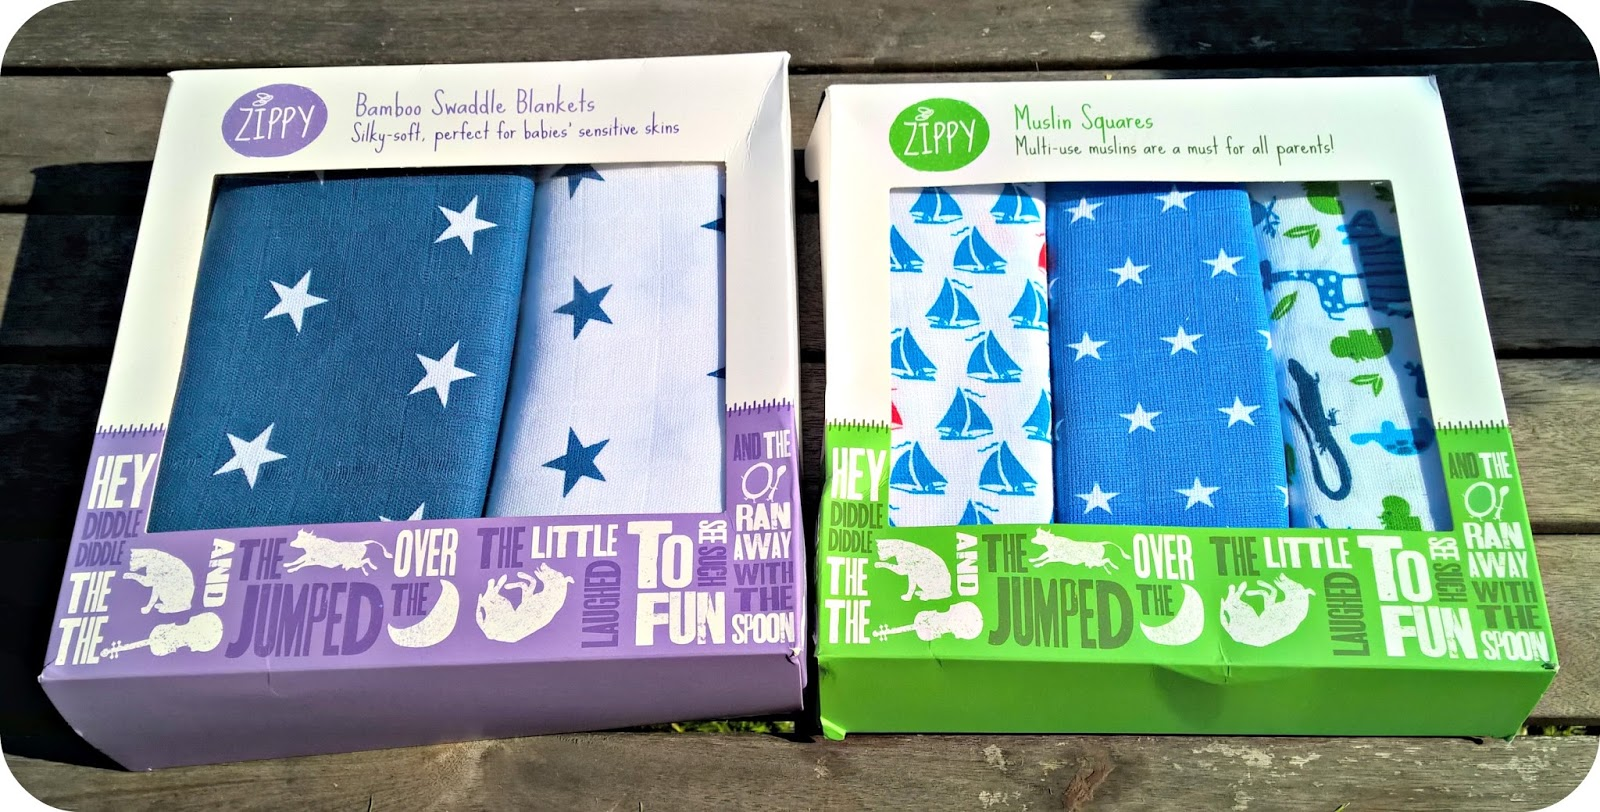 Zippy Swaddle Blankets and Muslin Squares - Review and Giveaway